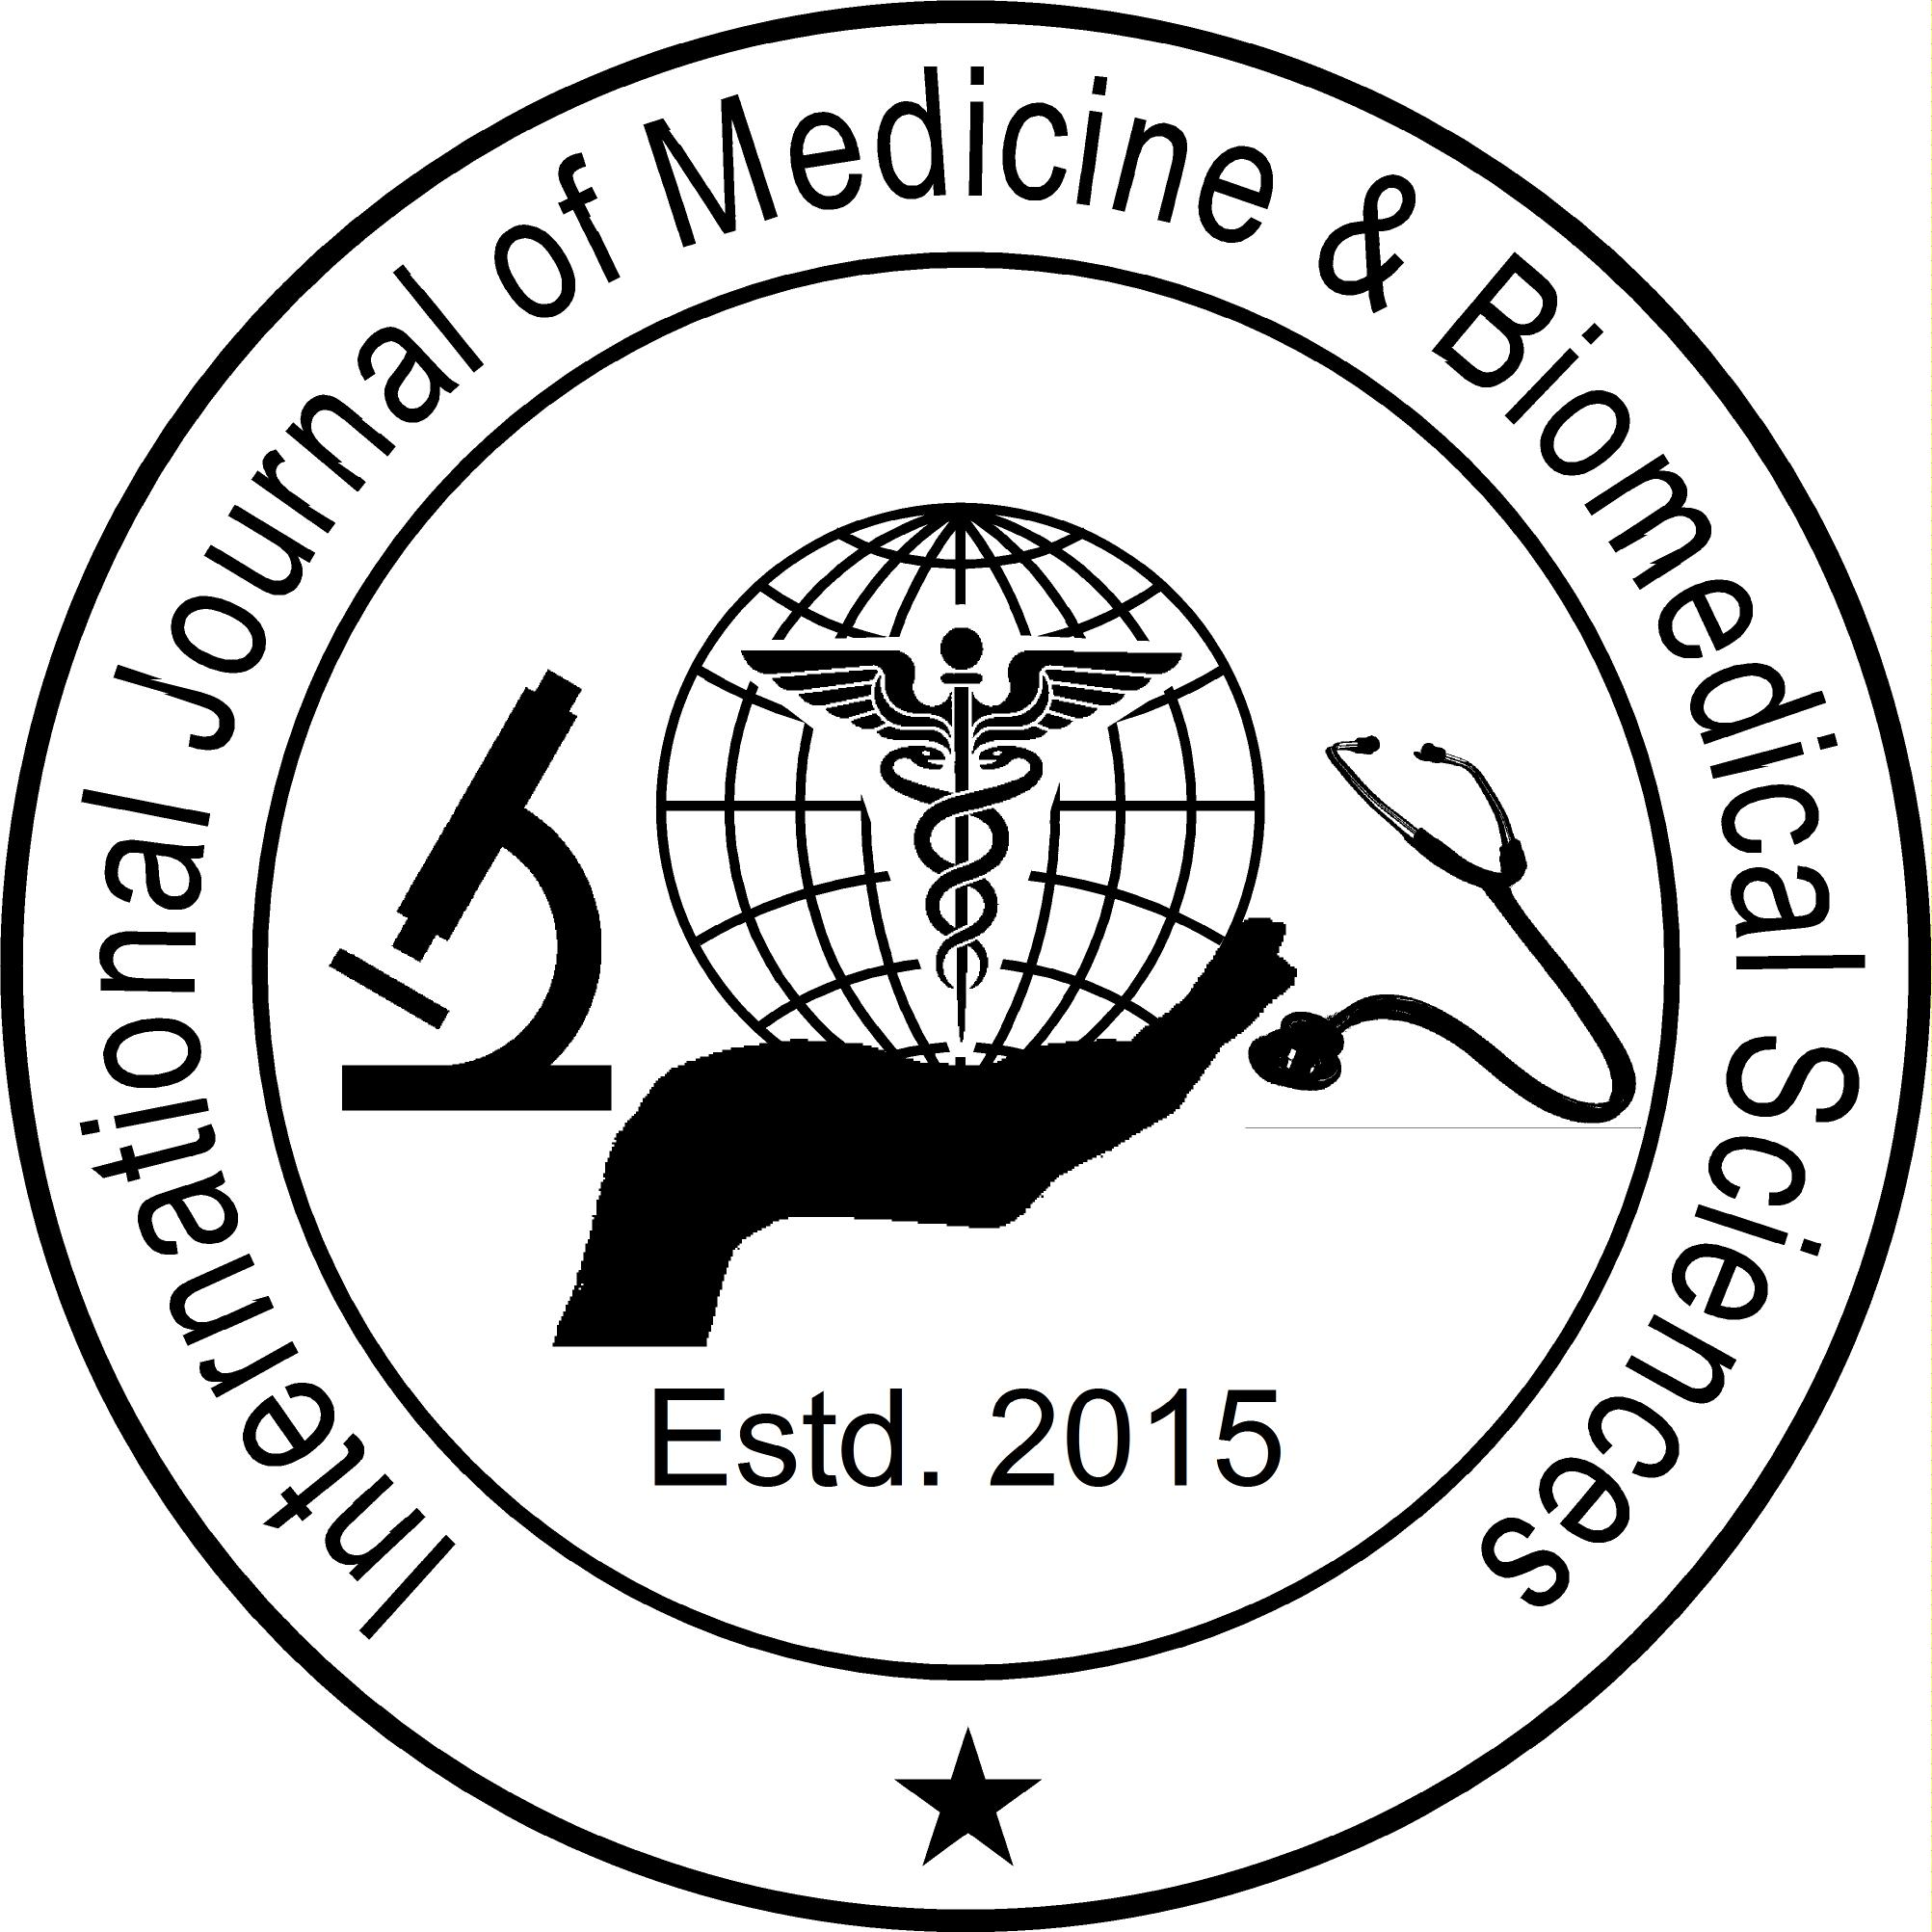 International Journal of Medicine & Biomedical Sciences